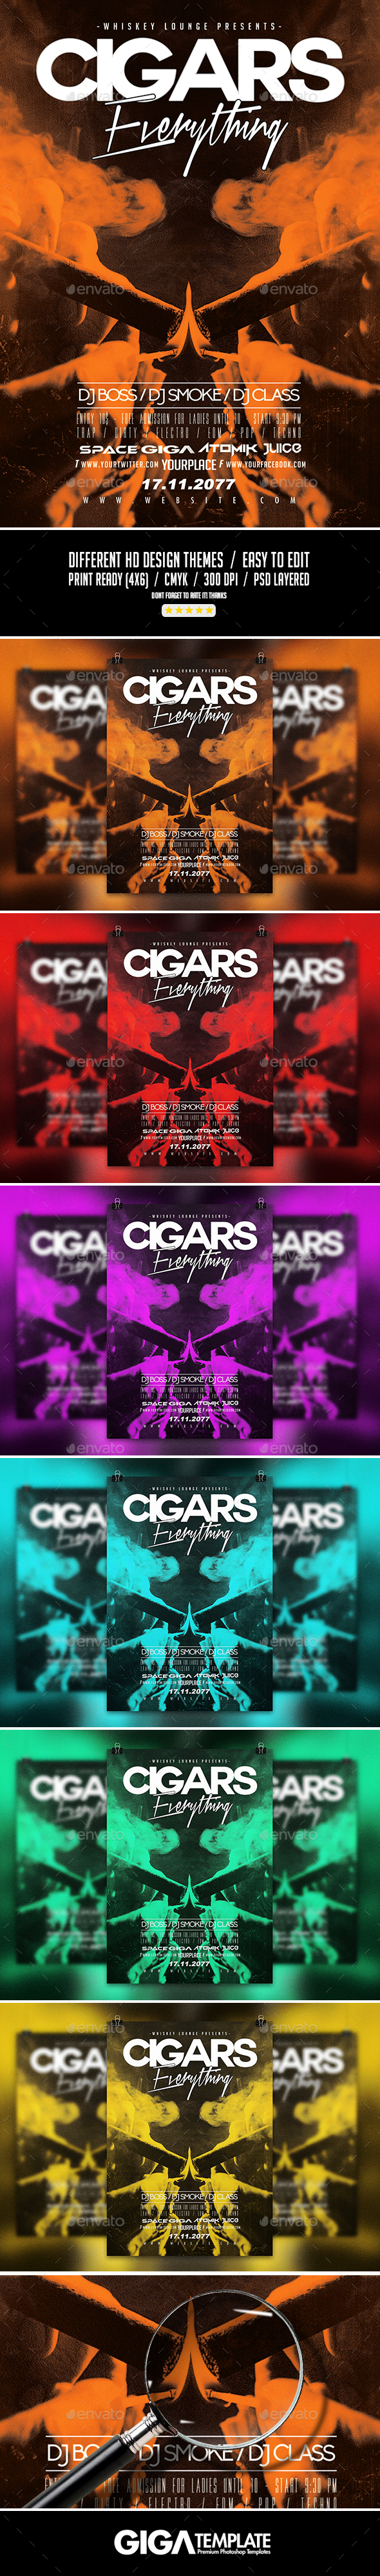 Cigars Everything | Luxury Chic Flyer PSD Template - Events Flyers